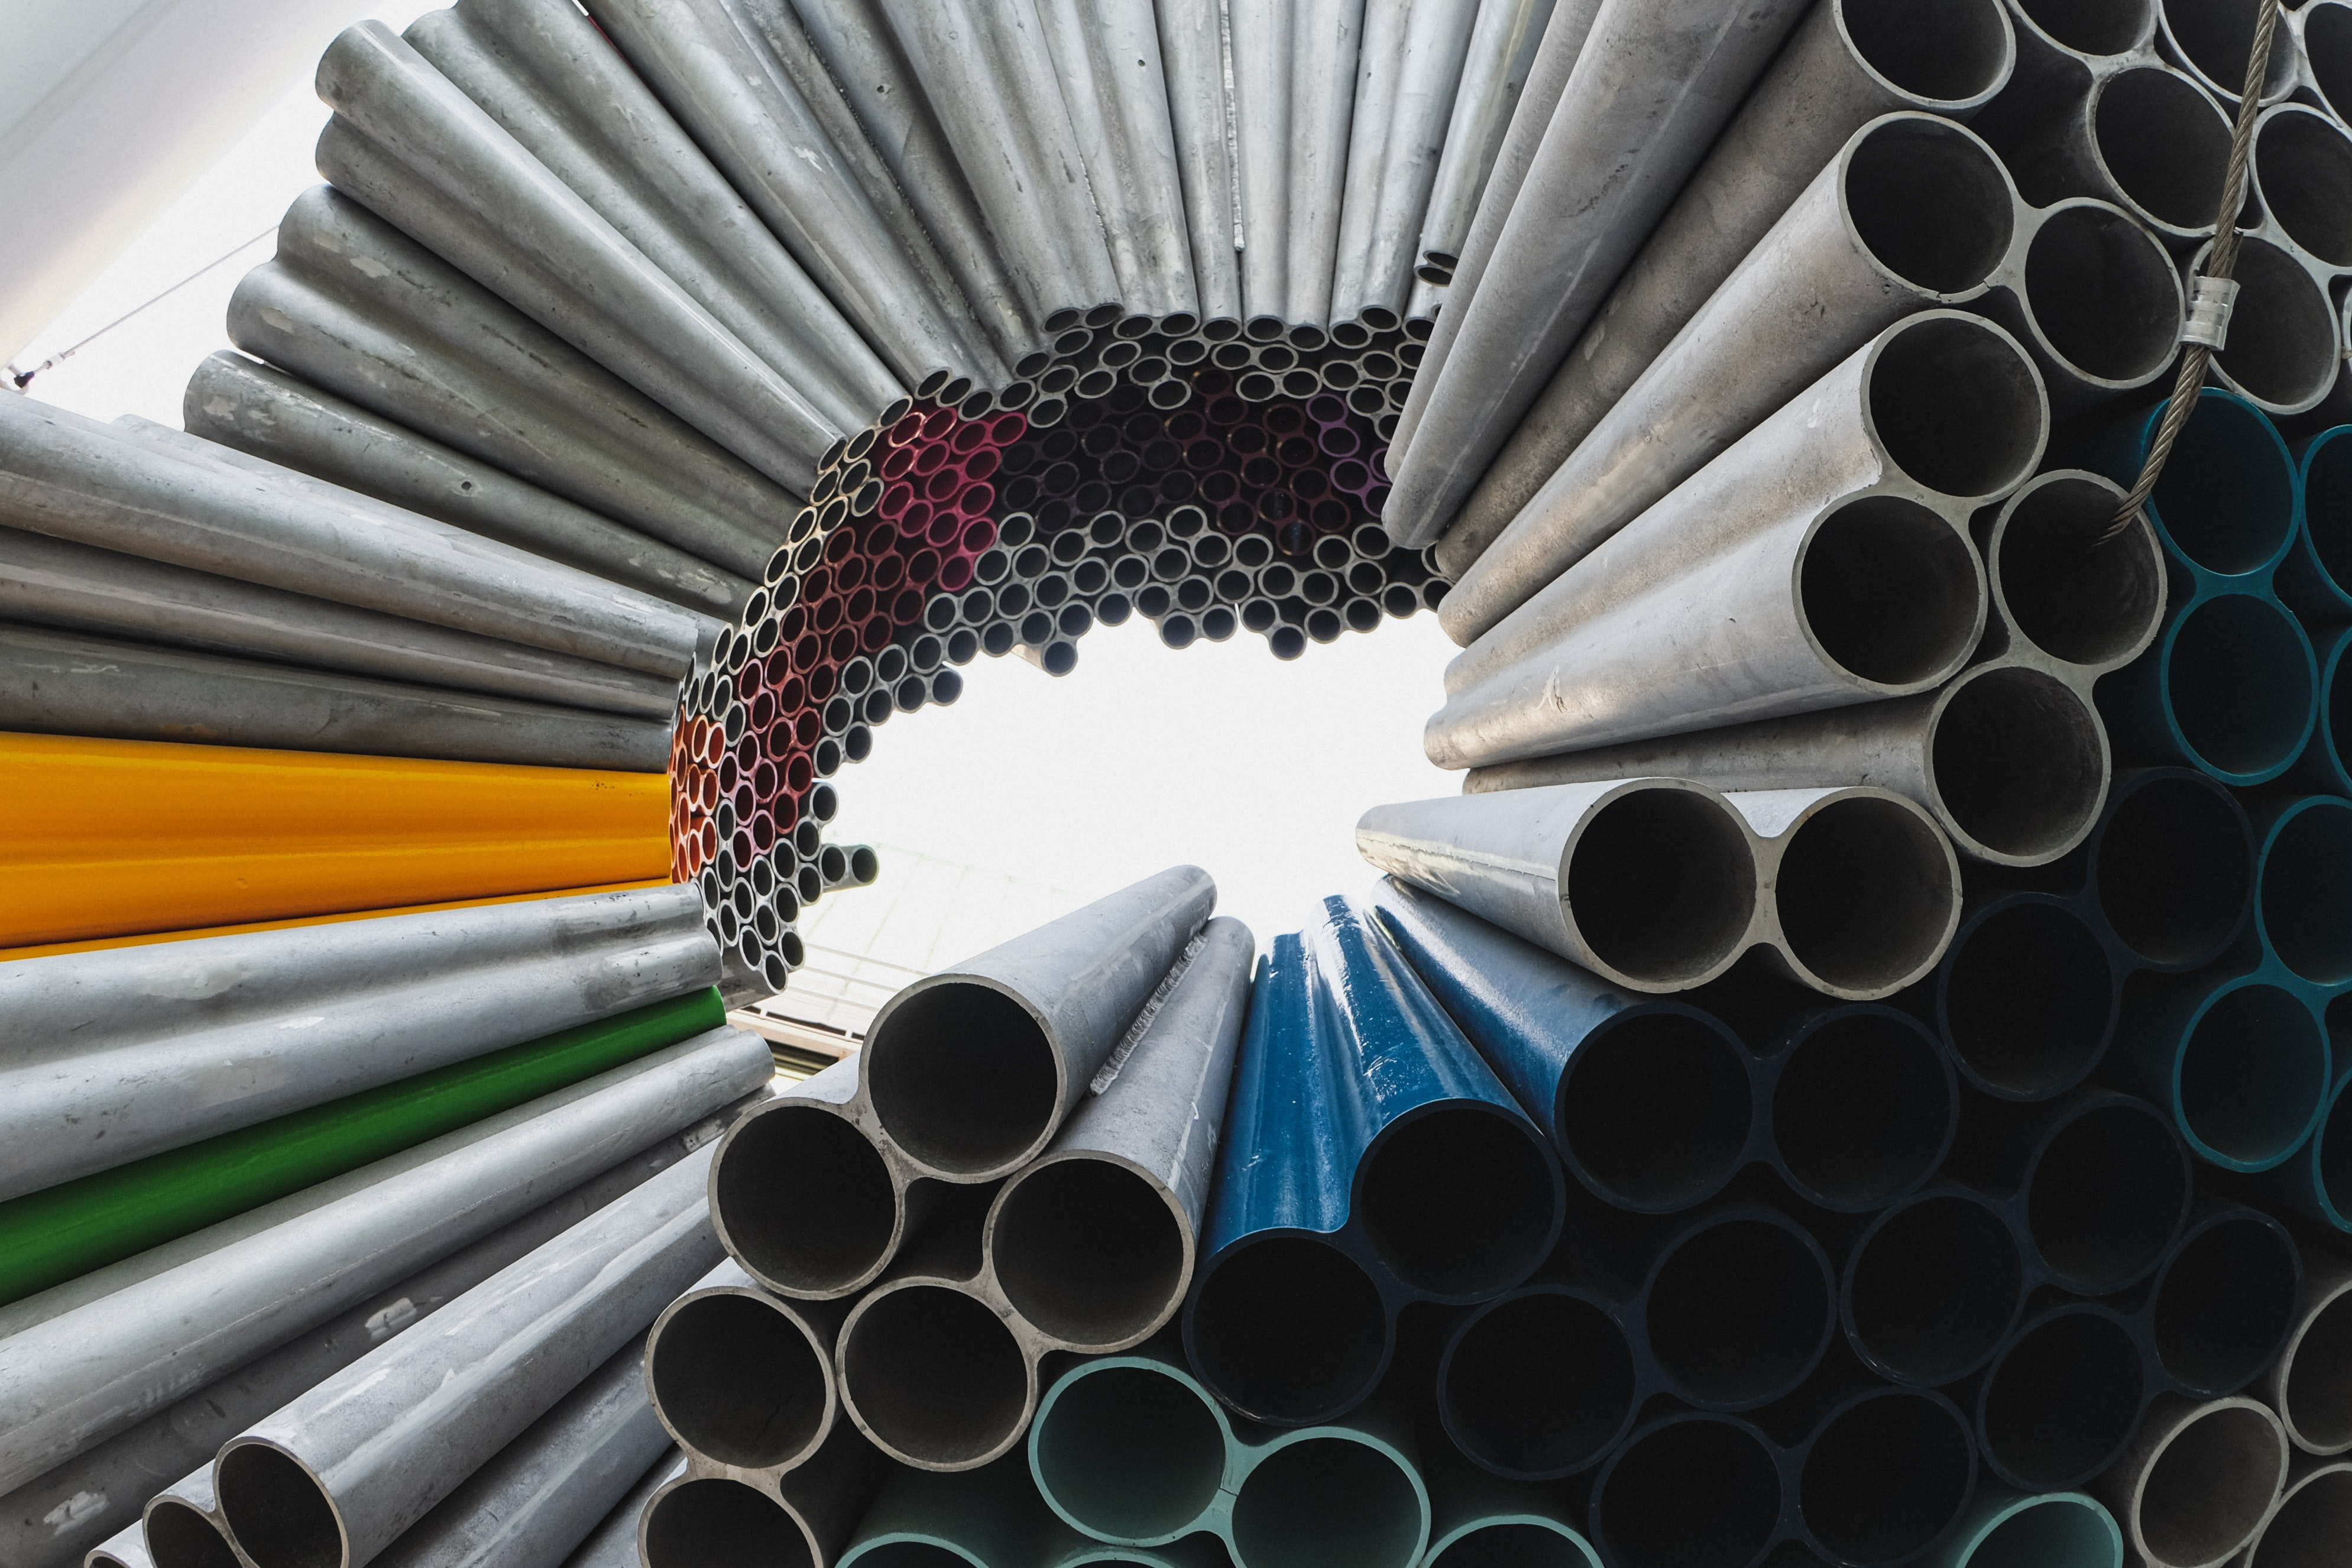 5 Most Common Applications of Stainless Steel In Different Industries